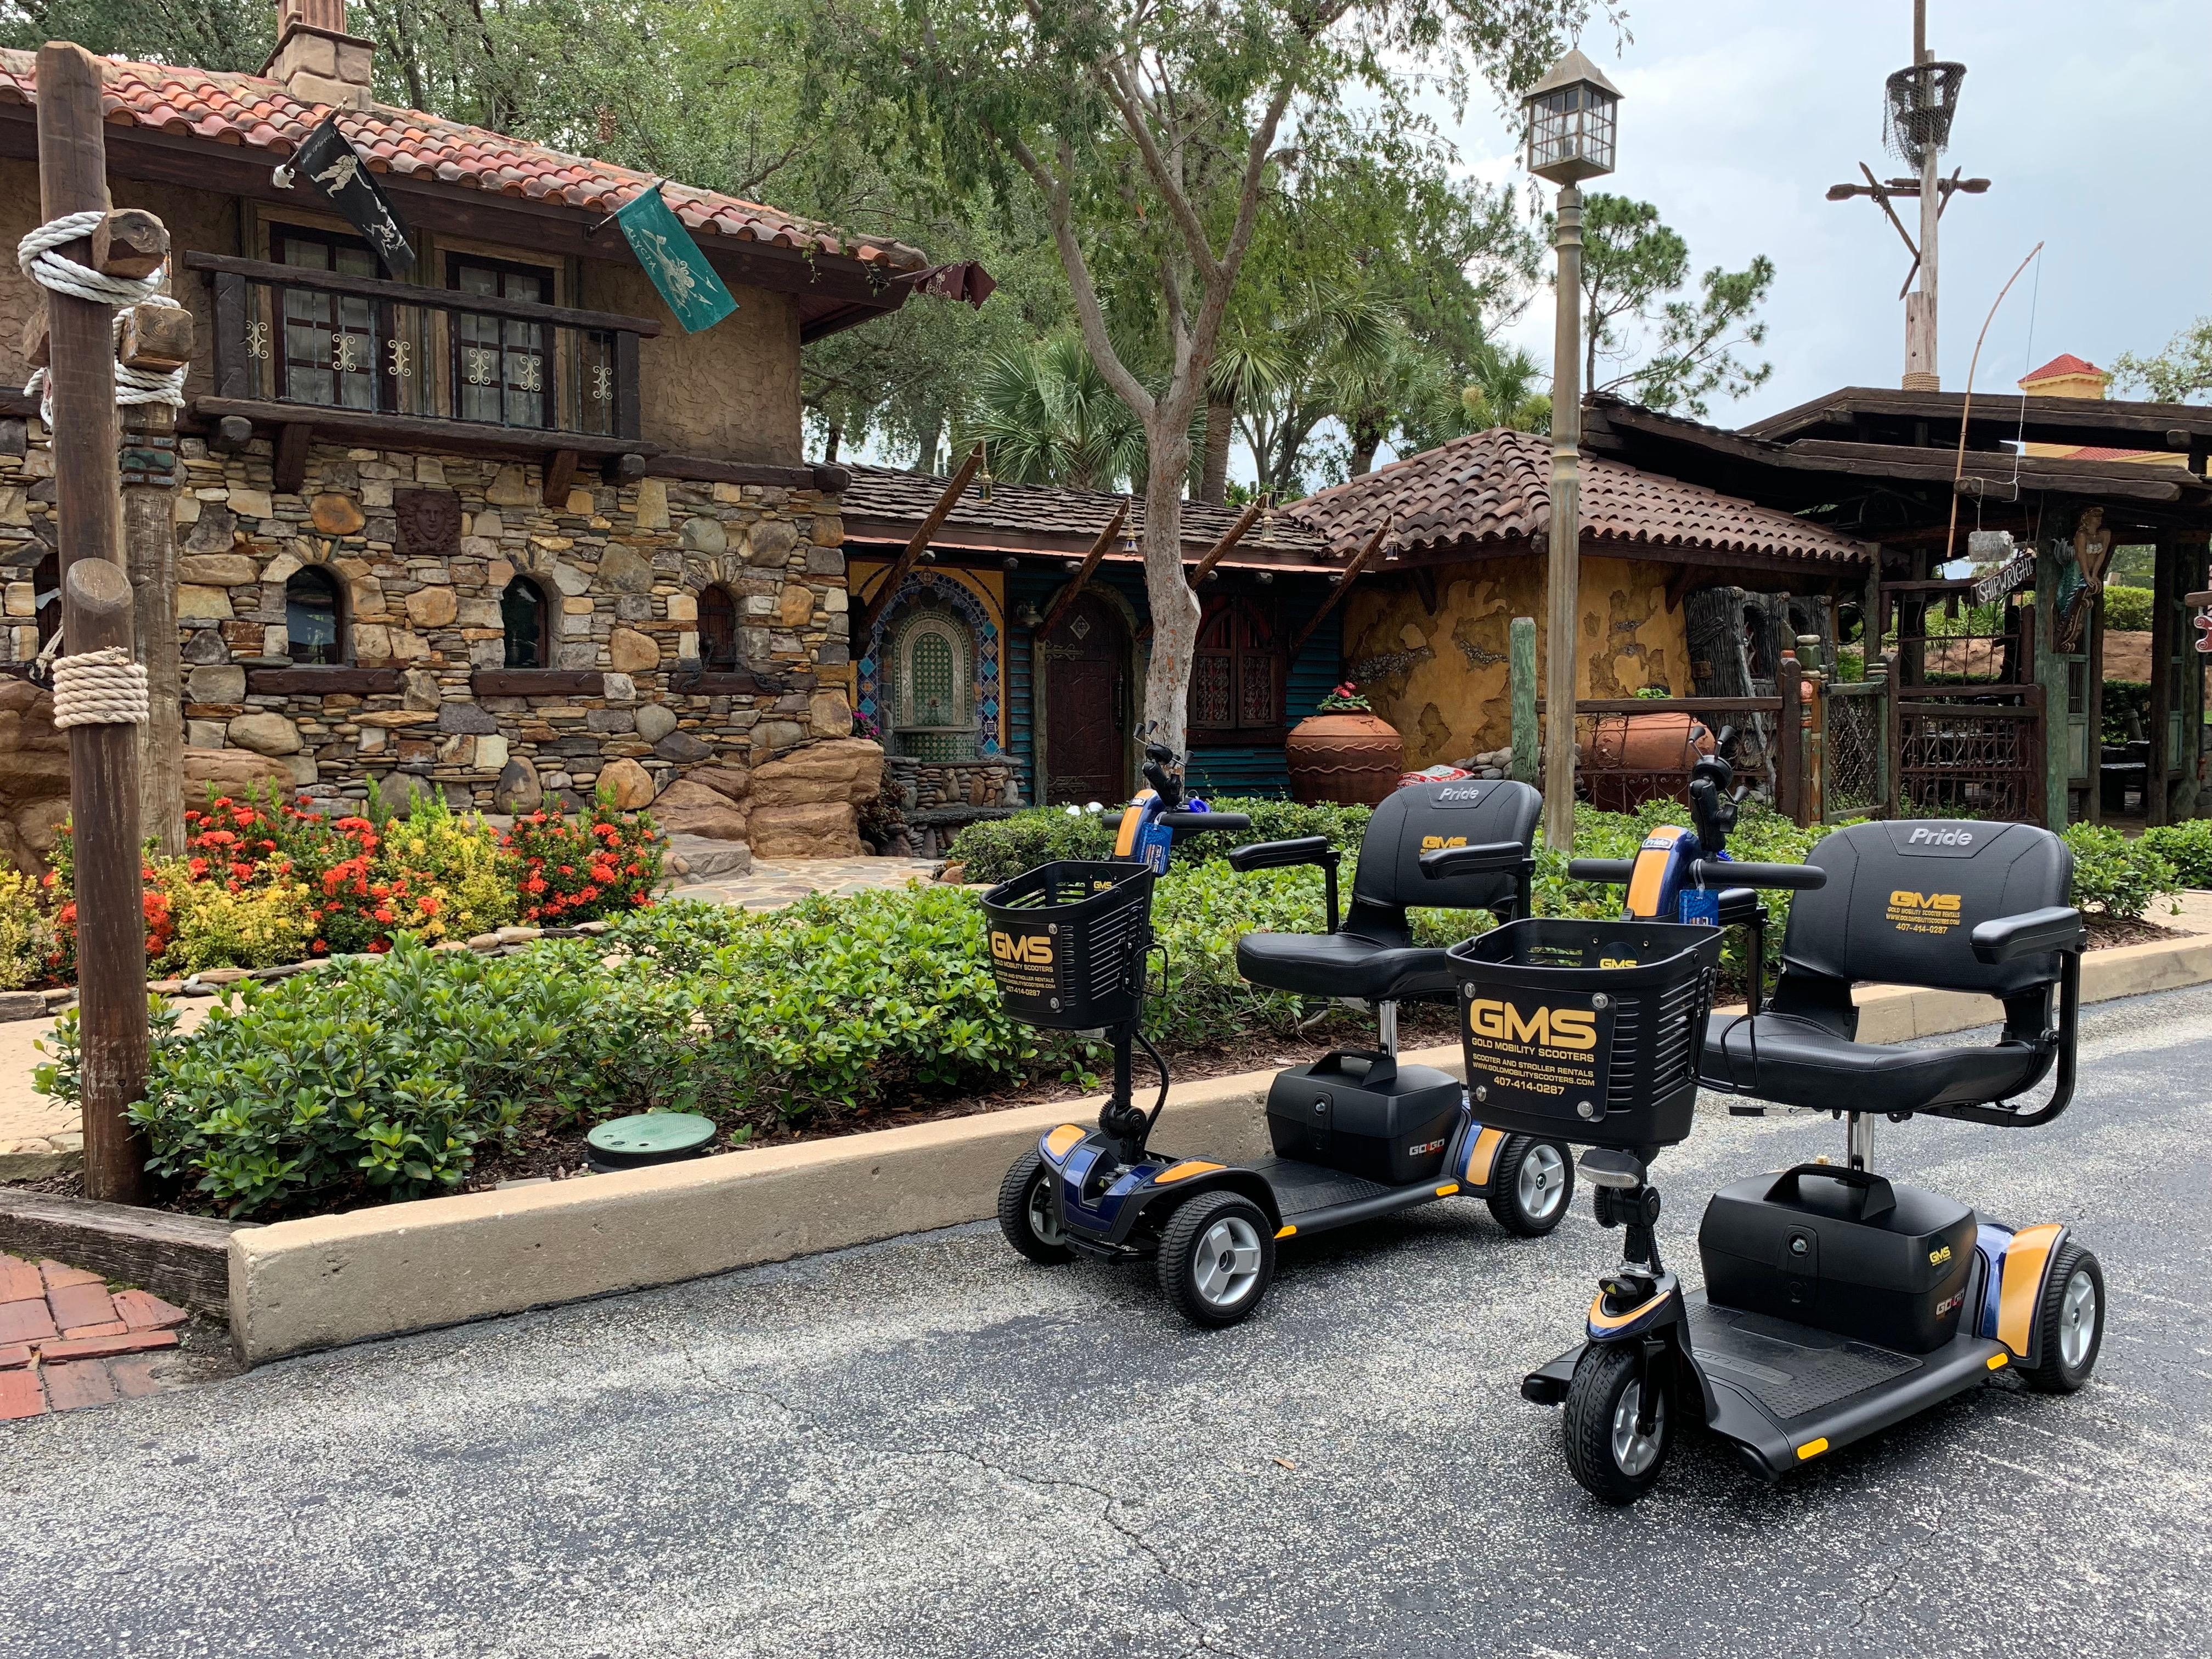 Mobility Scooter Hire by Gold Mobility Scooters. We sell and rent top of the line Pride Mobility Scooters in our rent a scooter line. Theme Parks and Orlando Florida Area scooter rentals. Best rental Prices, Premium brand new scooters for rent, Free Delivery and Pickup, Free Damage Waver, Free Accessories, and Custom upgrades. 5 star rated scooter rental company. Scooter Rental info at https://goldmobilityscooters.com or Call us at 407-414-0287